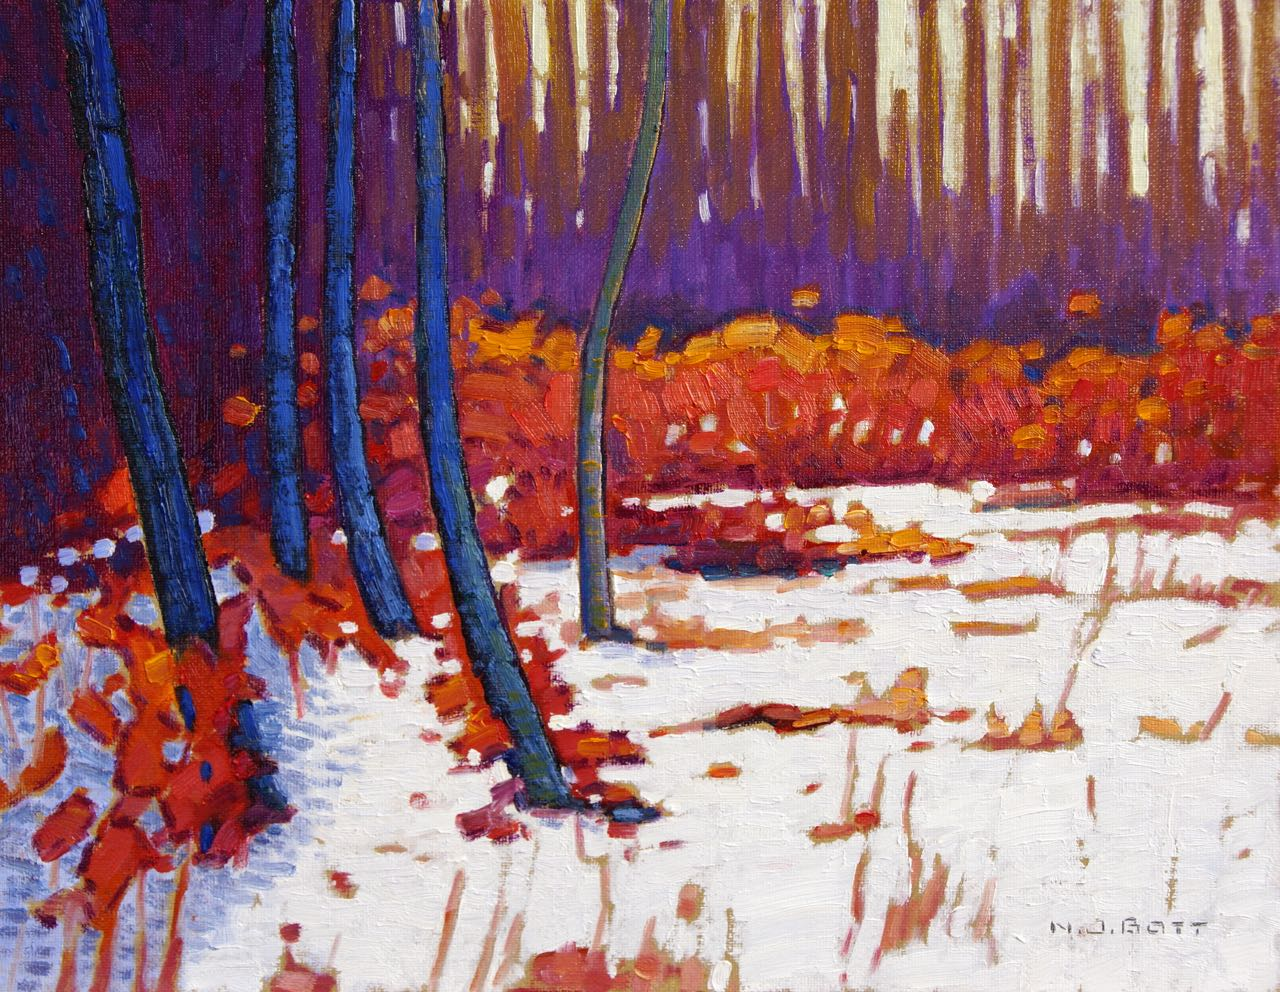 October Snow  11 x 14  Oil on Canvas  SOLD